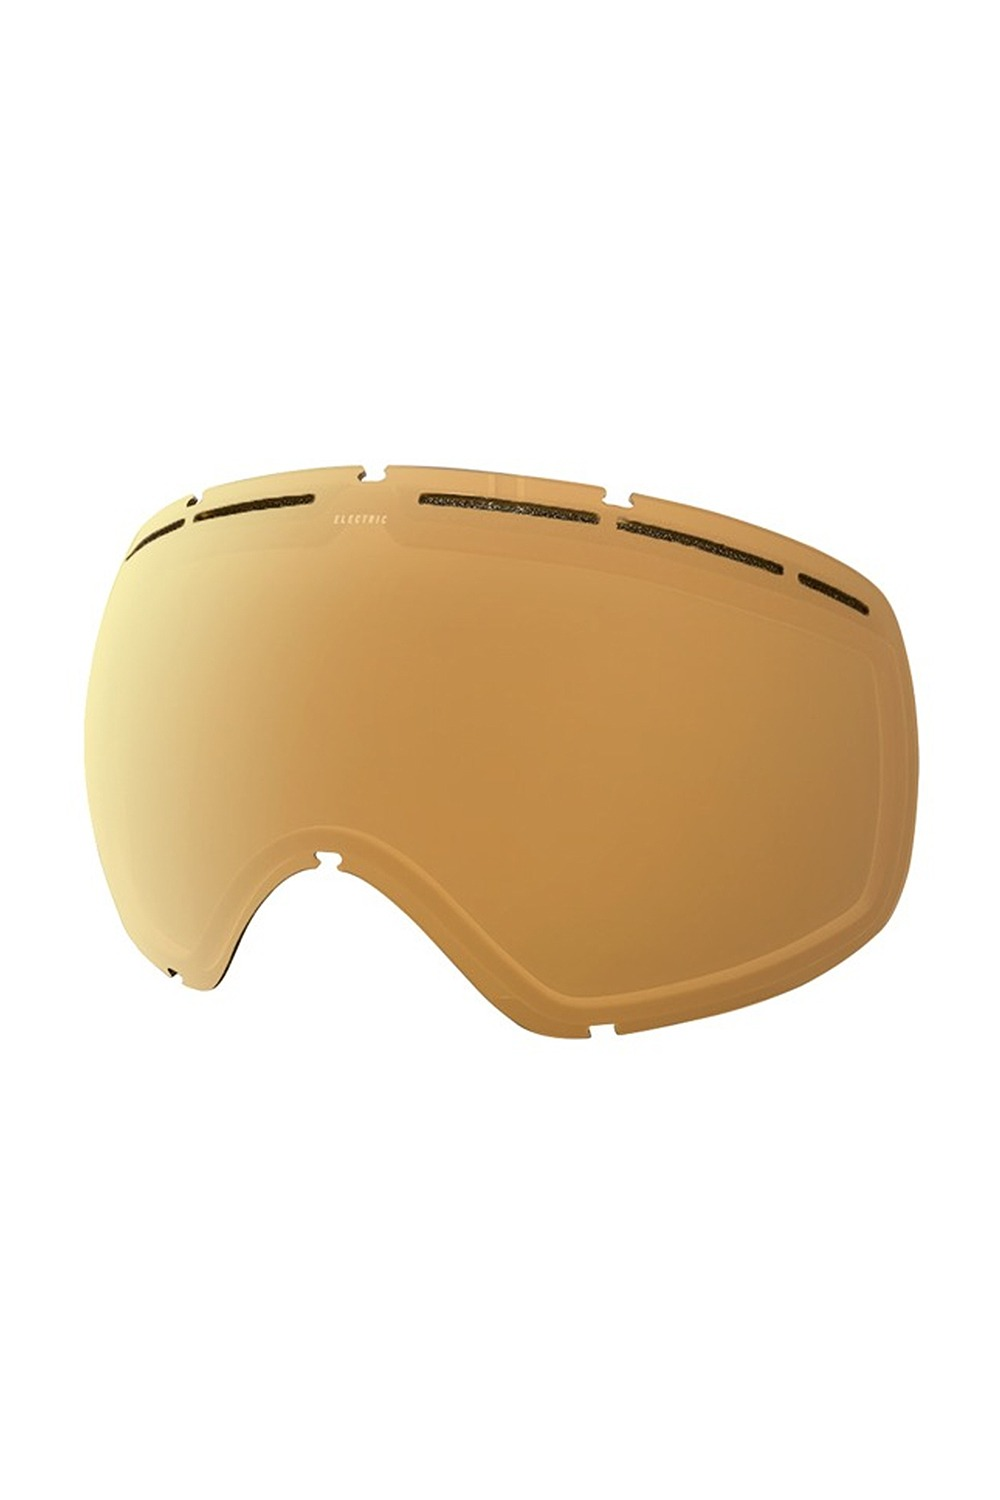 일렉트릭 고글 리필렌즈 이지투  주간용 BEG898GD / BROSE LIGHT/GOLD CHROME 1819 ELECTRIC EG2 SPARE LENS _DXEG898GD